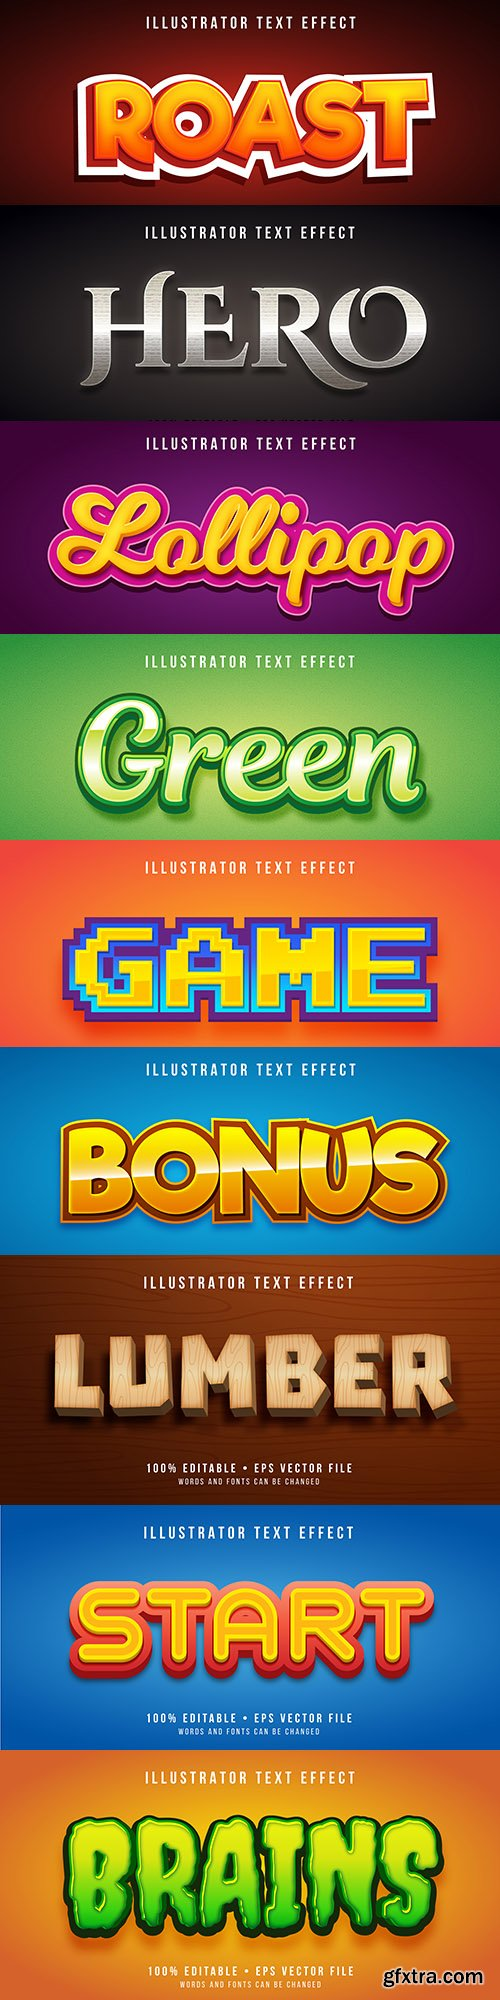 Editable font effect text collection illustration 15